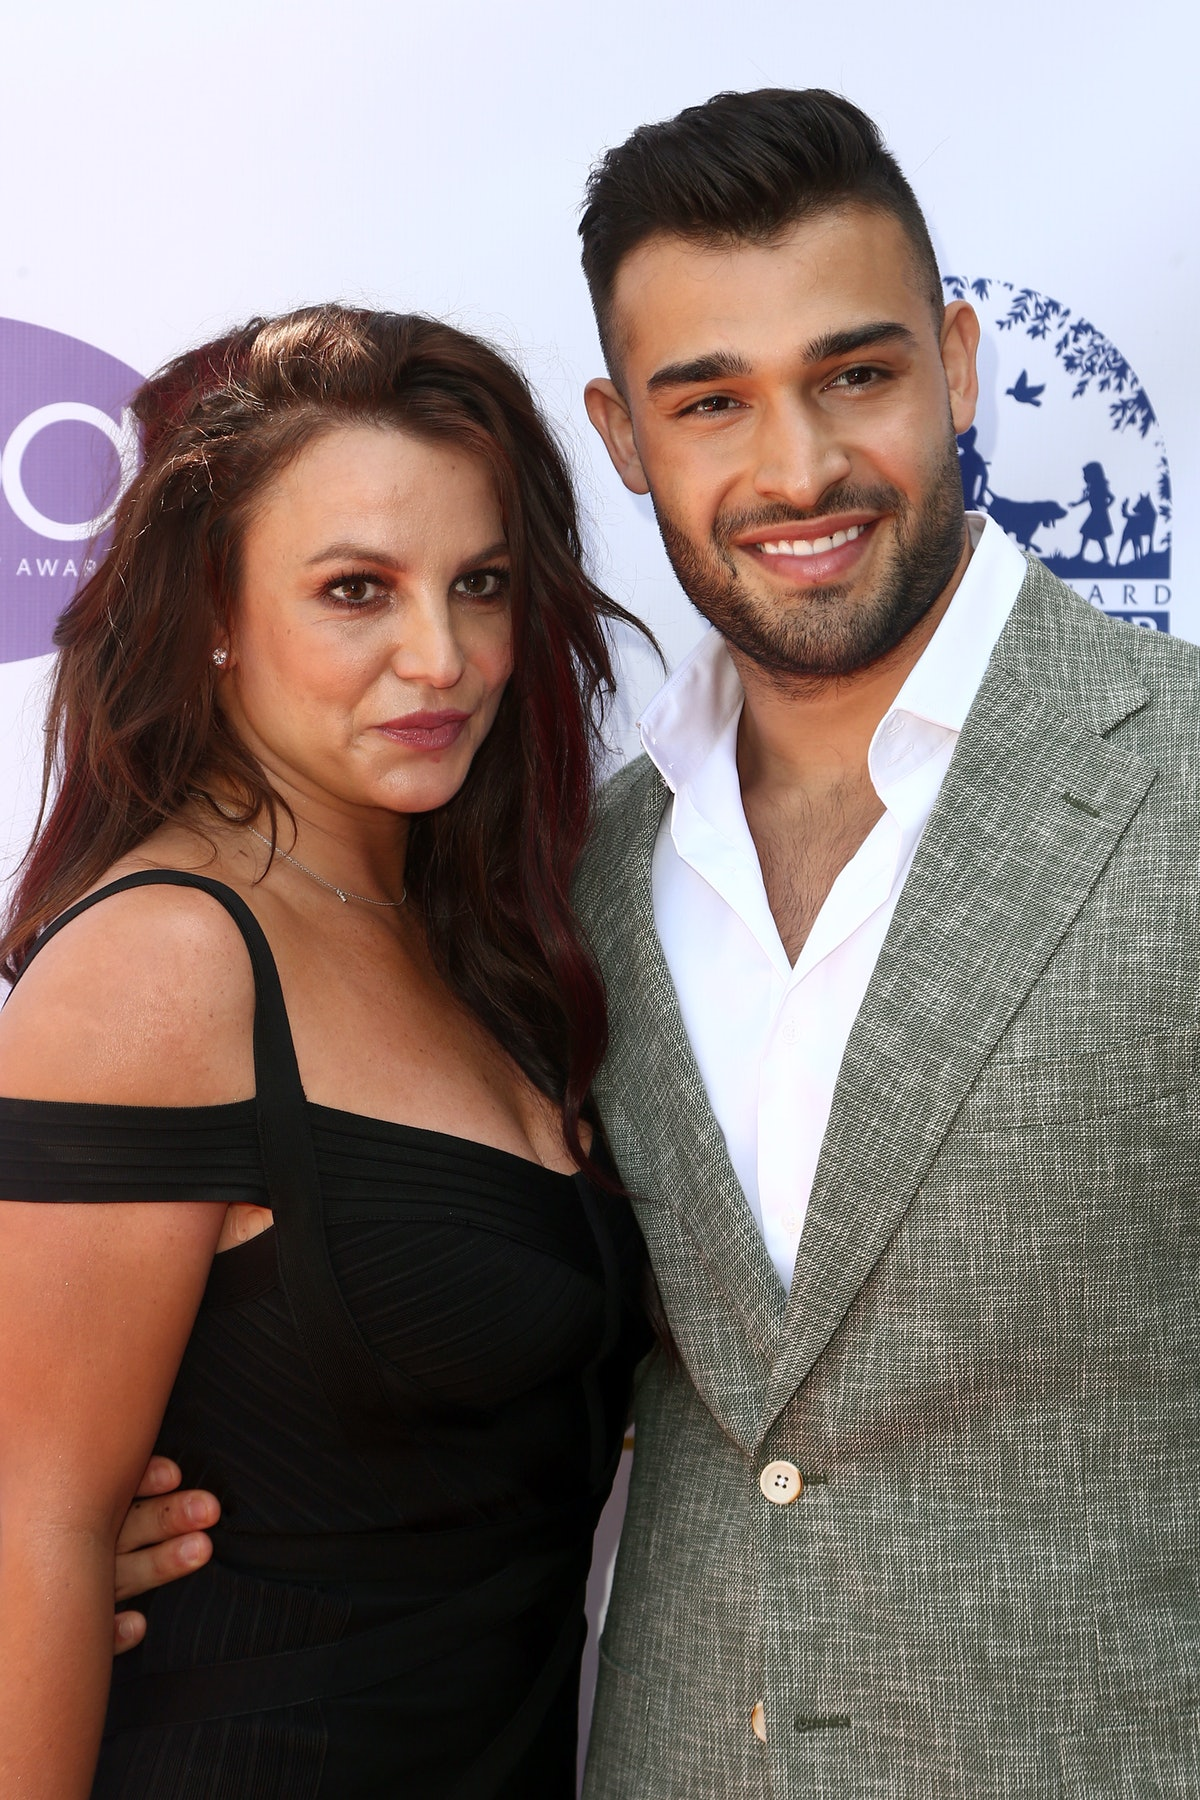 LOS ANGELES, CALIFORNIA - SEPTEMBER 20:  Britney Spears and Sam Asghari attend the 2019 Daytime Beau...